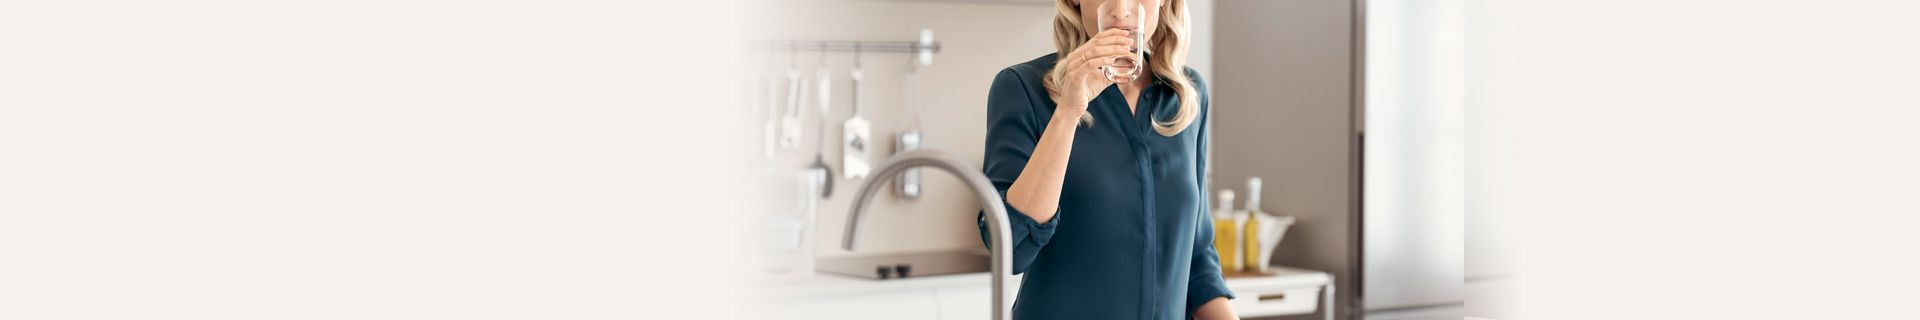 Woman drinking glass of water at kitchen bench.